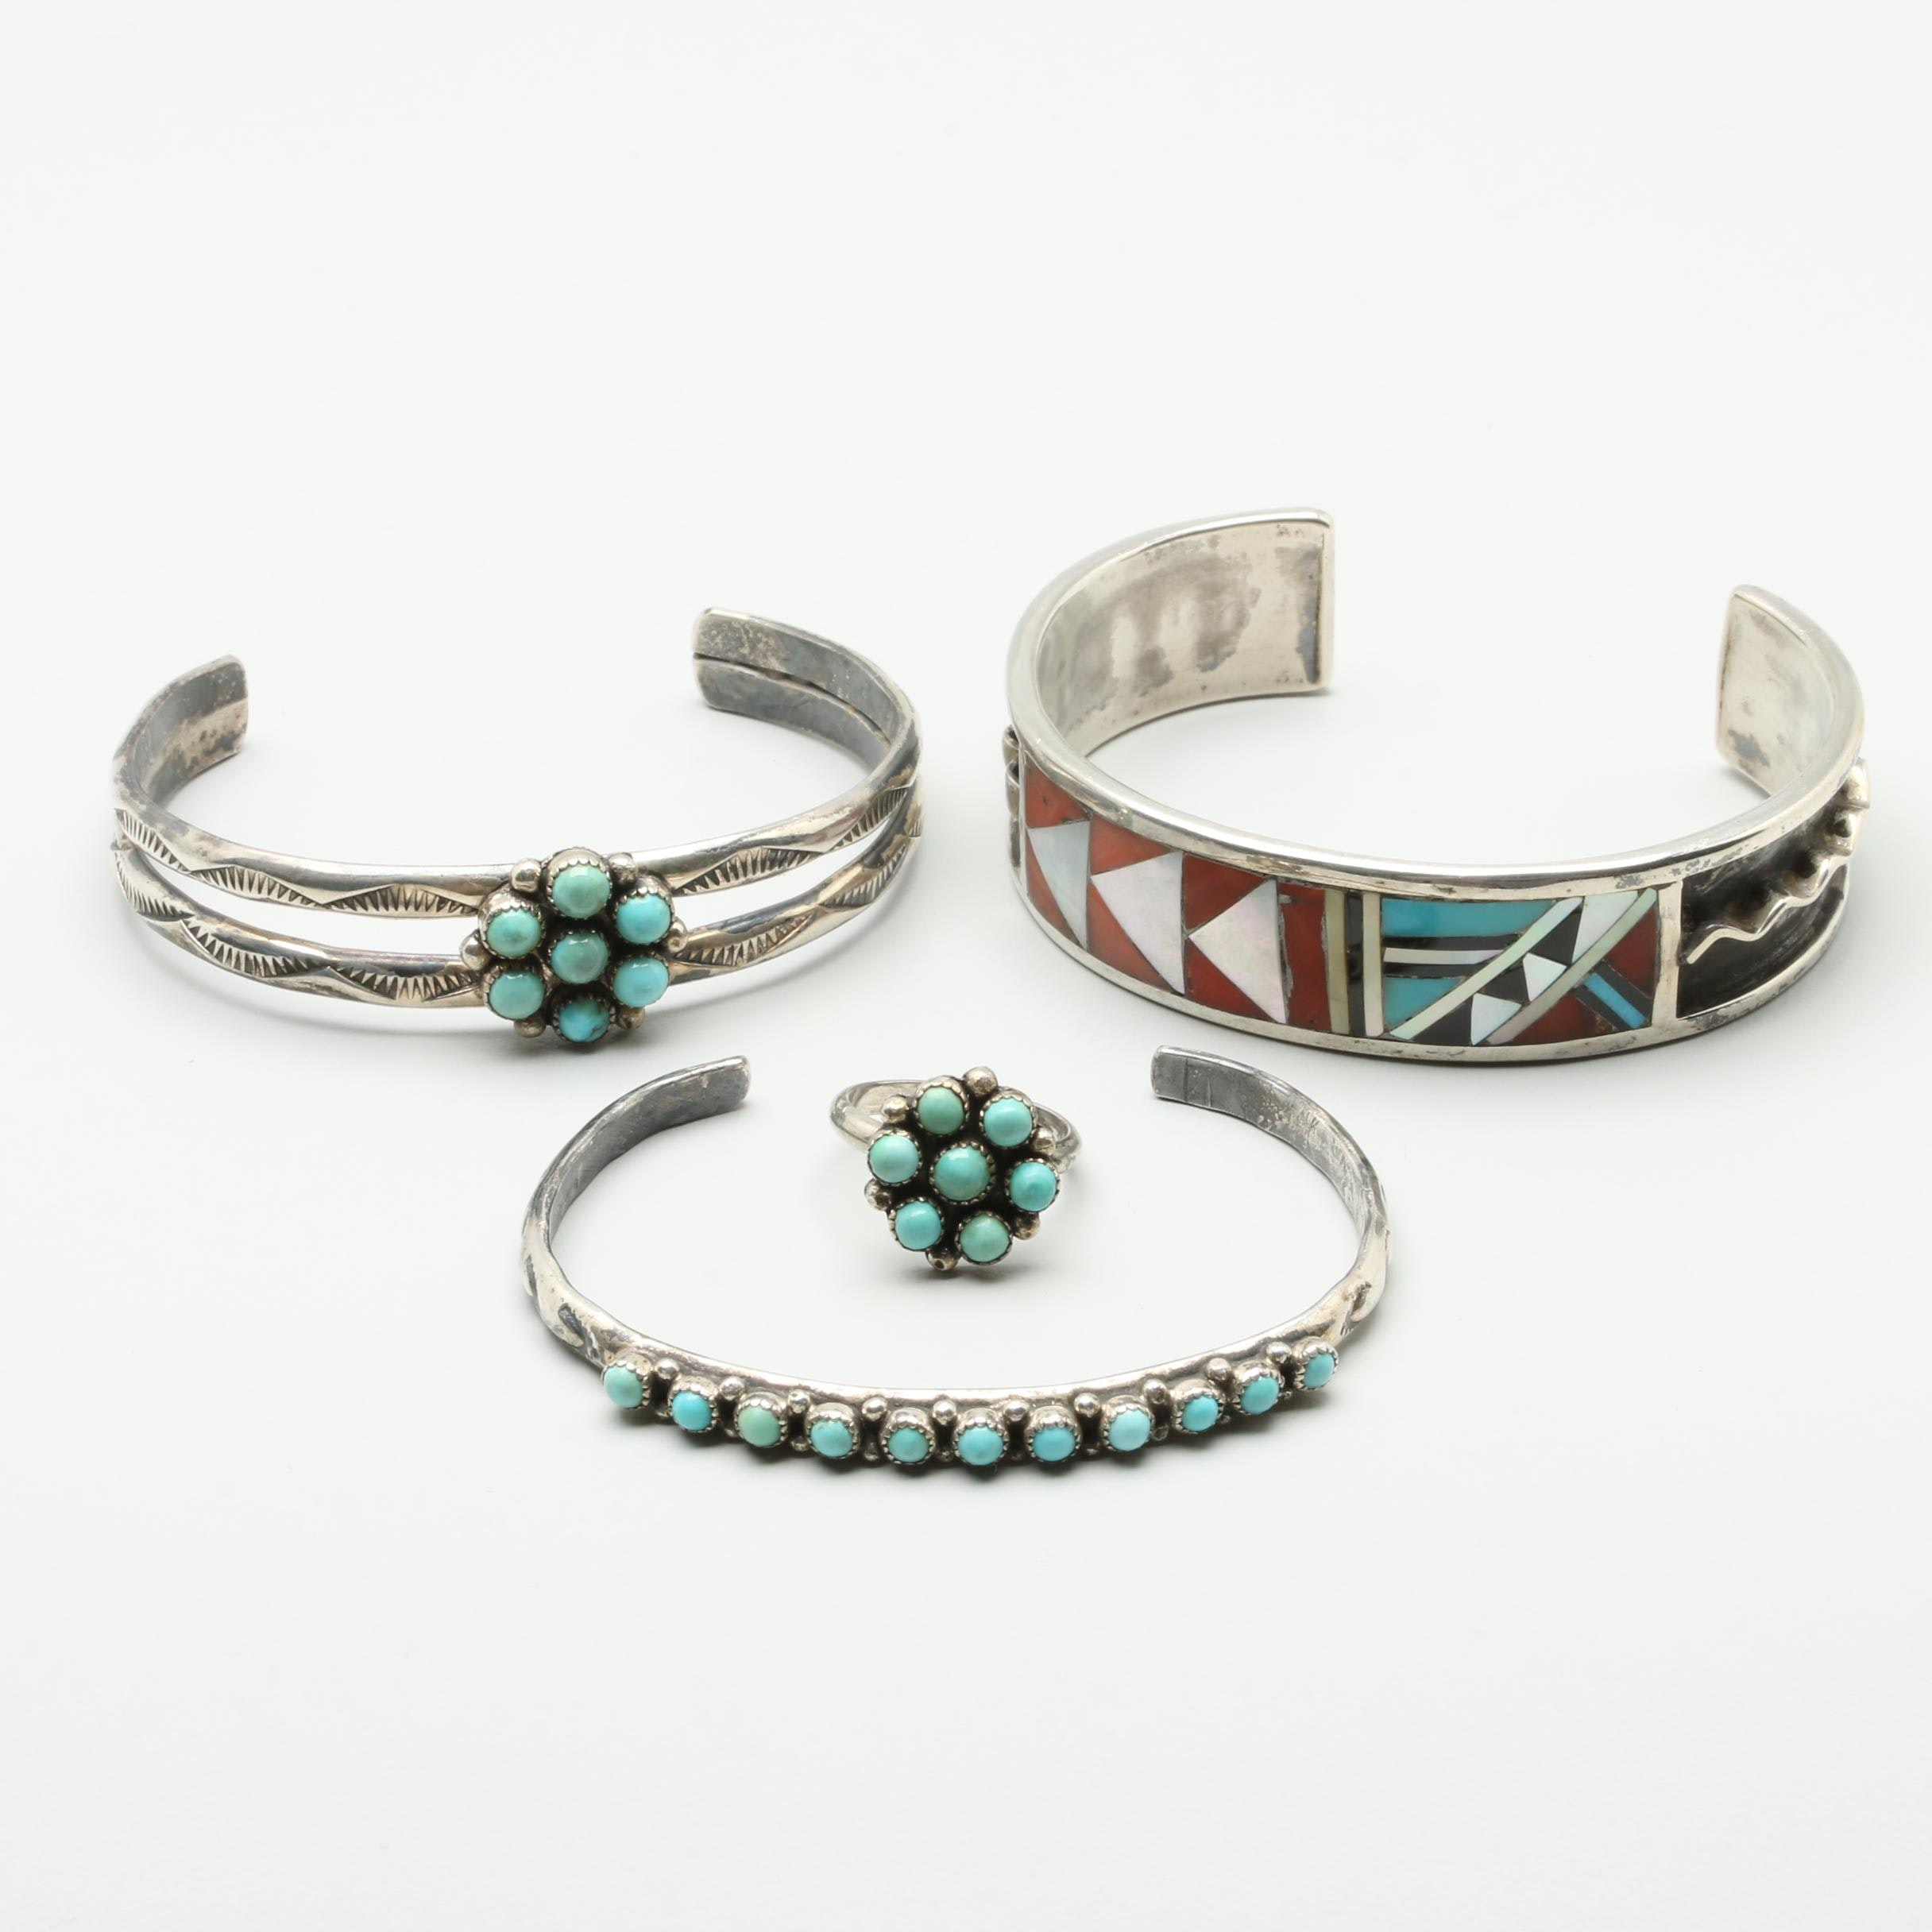 Southwestern Style Sterling and 900 Silver Jewelry Including Turquoise and Coral